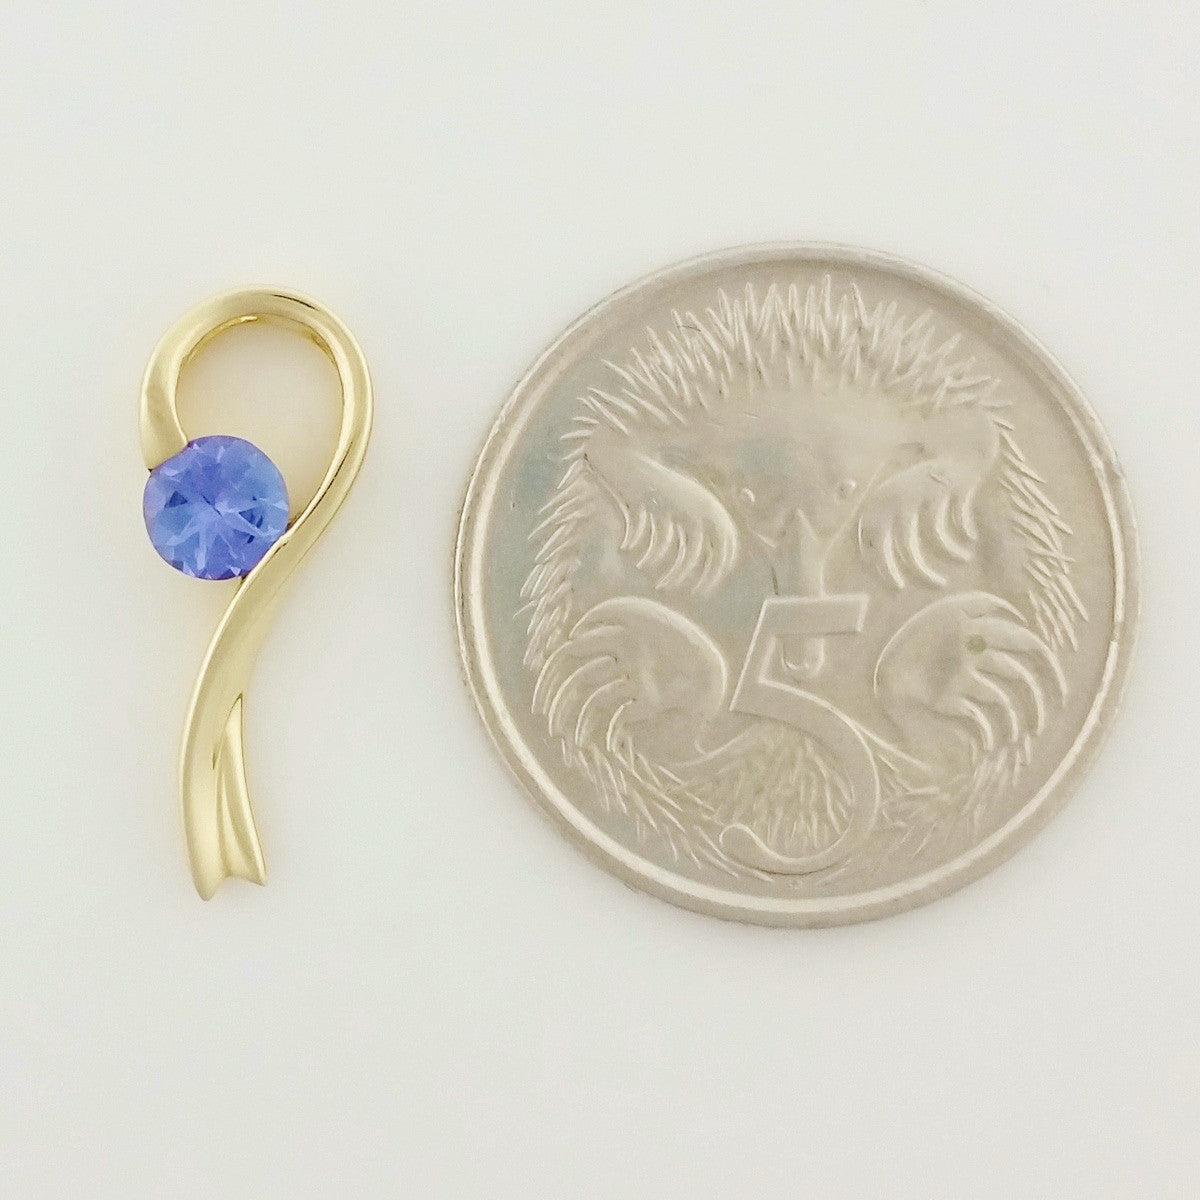 9K SOLID GOLD 0.29CT TANZANITE PENDANT.